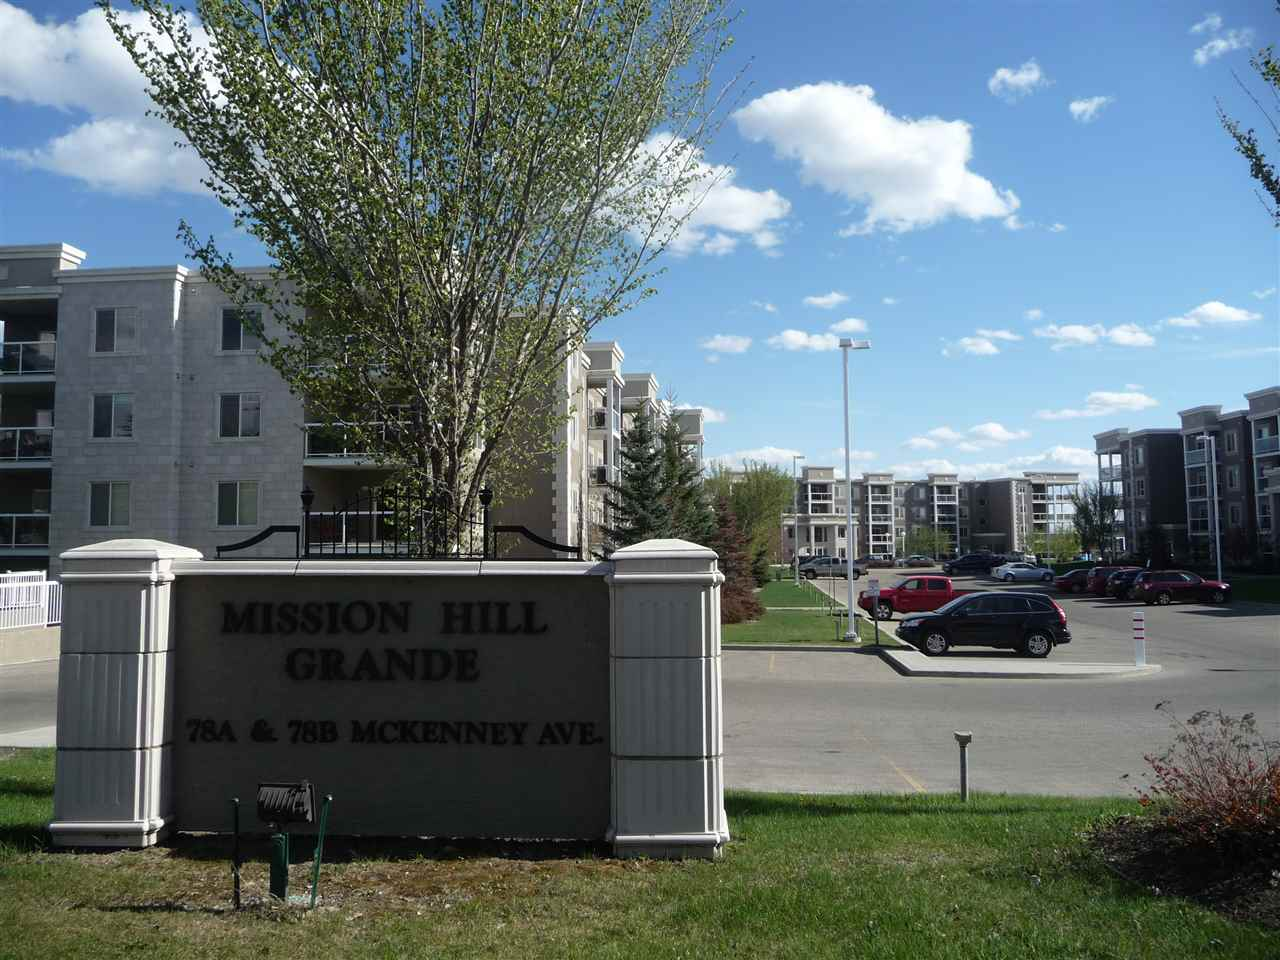 Attractive is the best word to describe the MISSION HILL GRANDE grounds. From the classy signage to the well maintained grass etc., you will be proud to call it home.